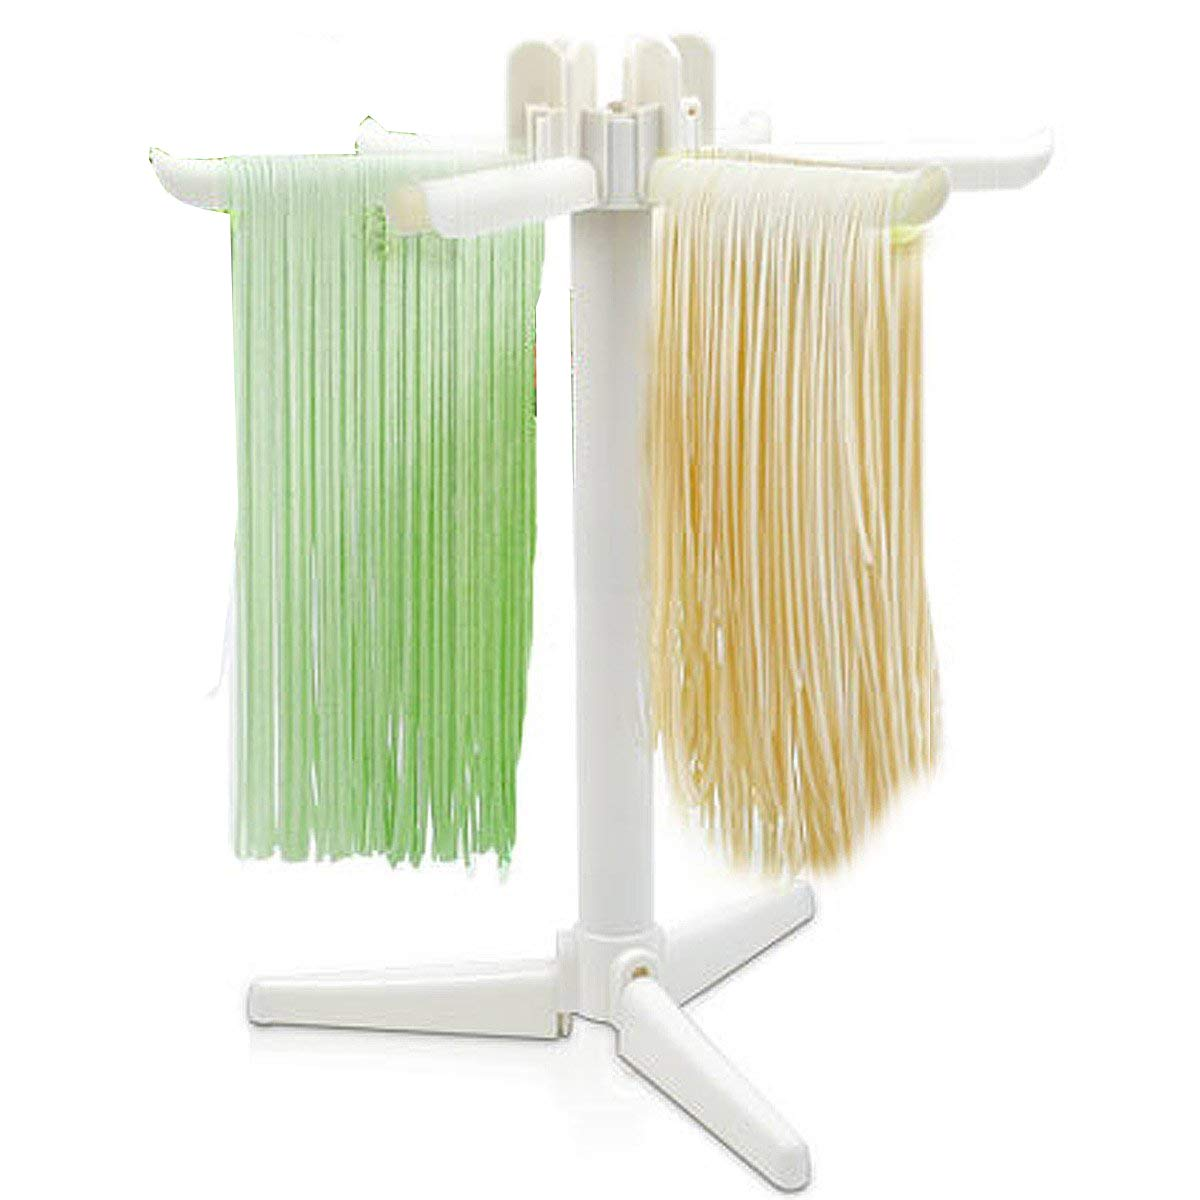 NANHONG Collapsible Pasta Drying Rack Spaghetti Noodles Dryer Stand Holder CF21